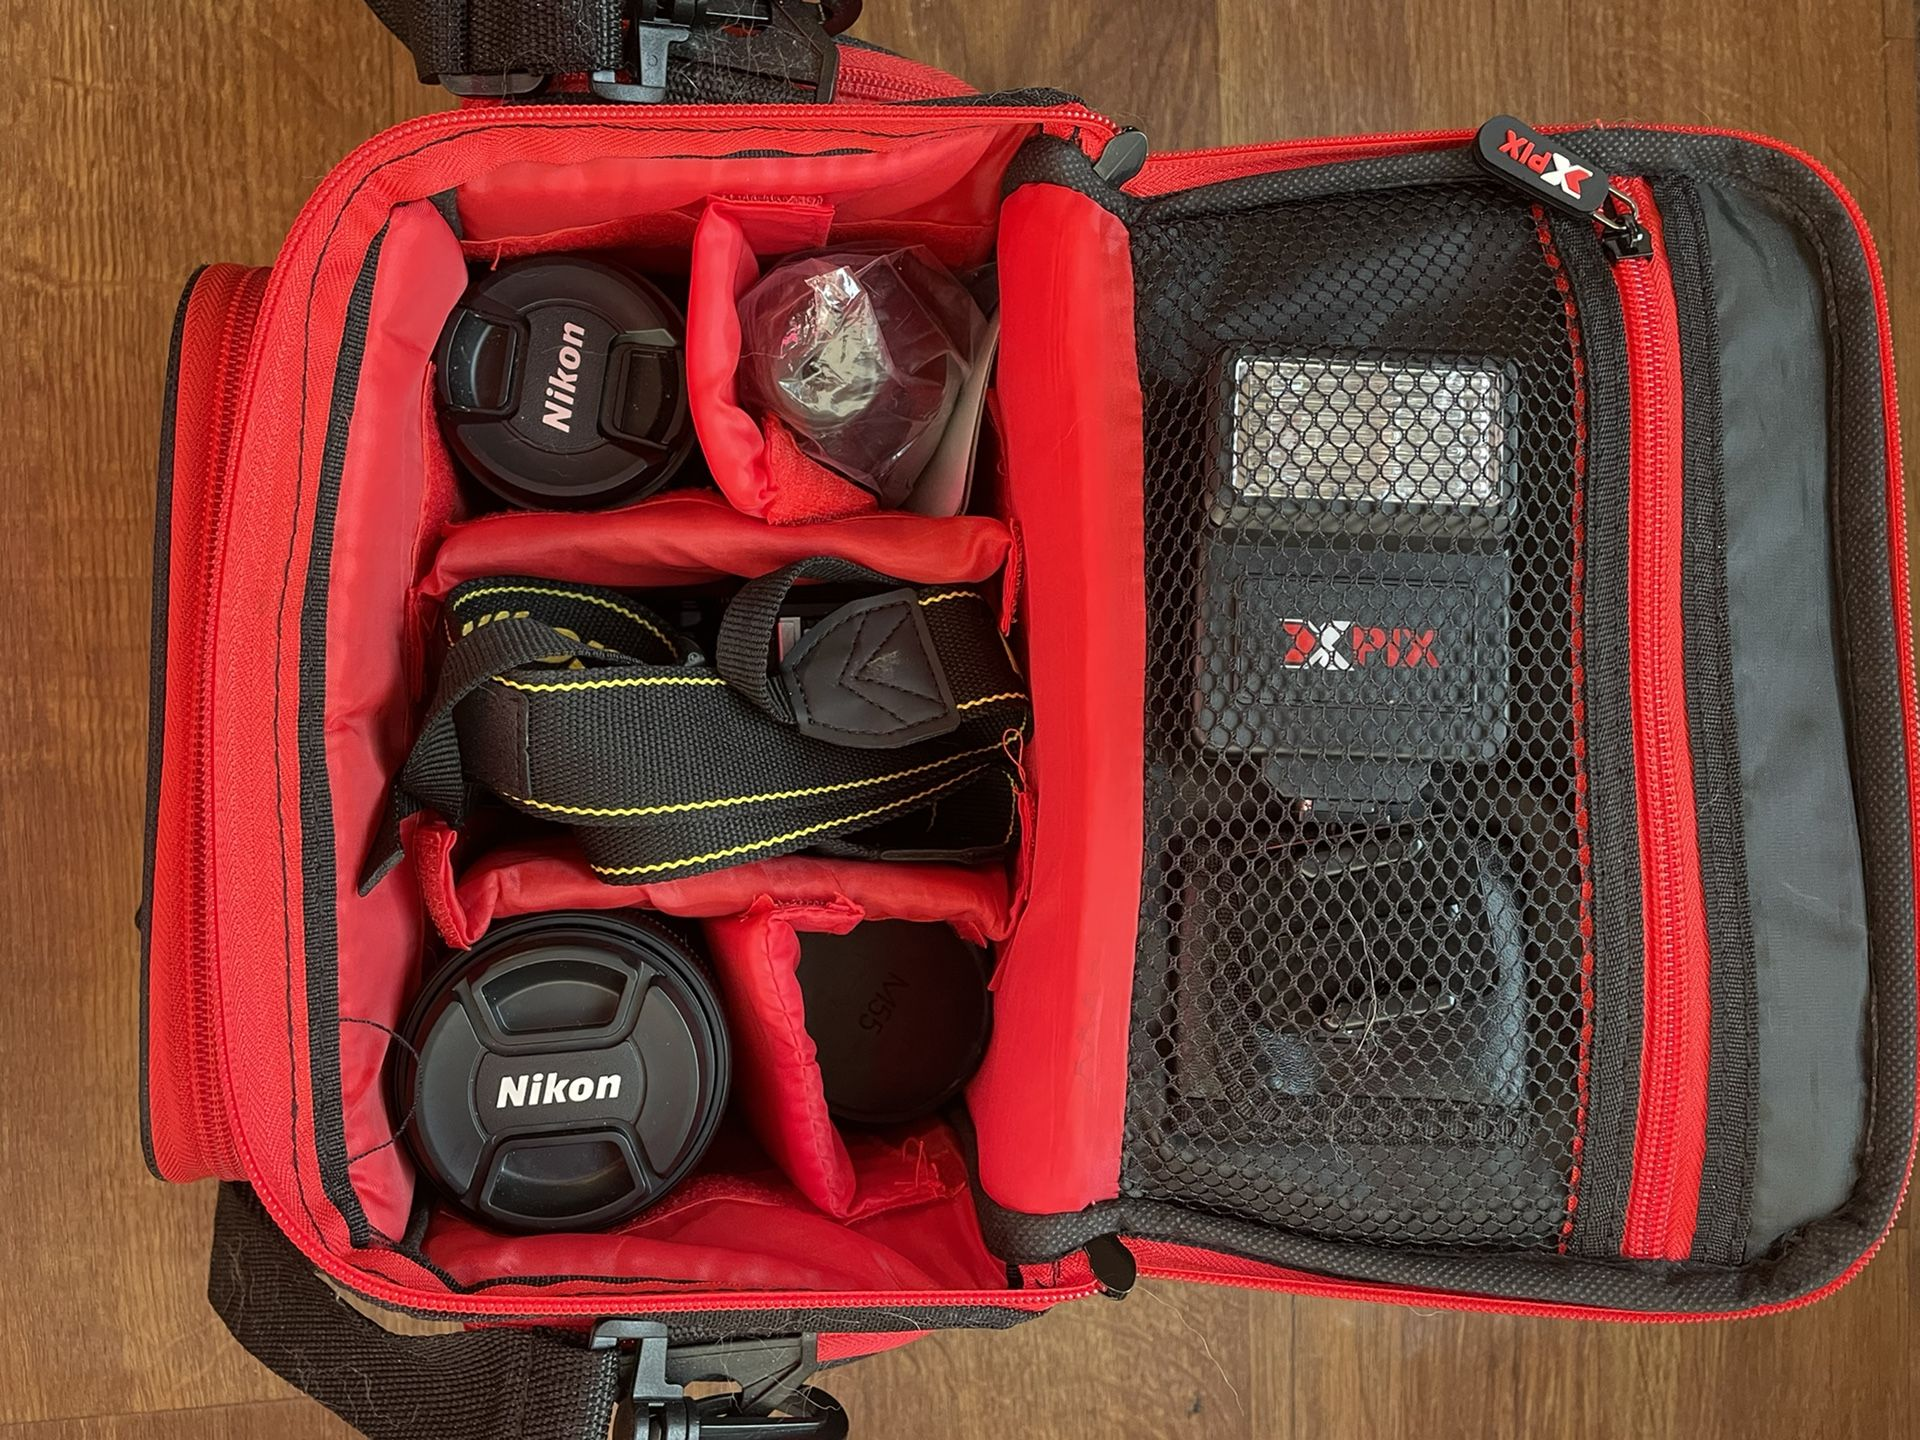 Nikon D3500 With Lenses And Accessories